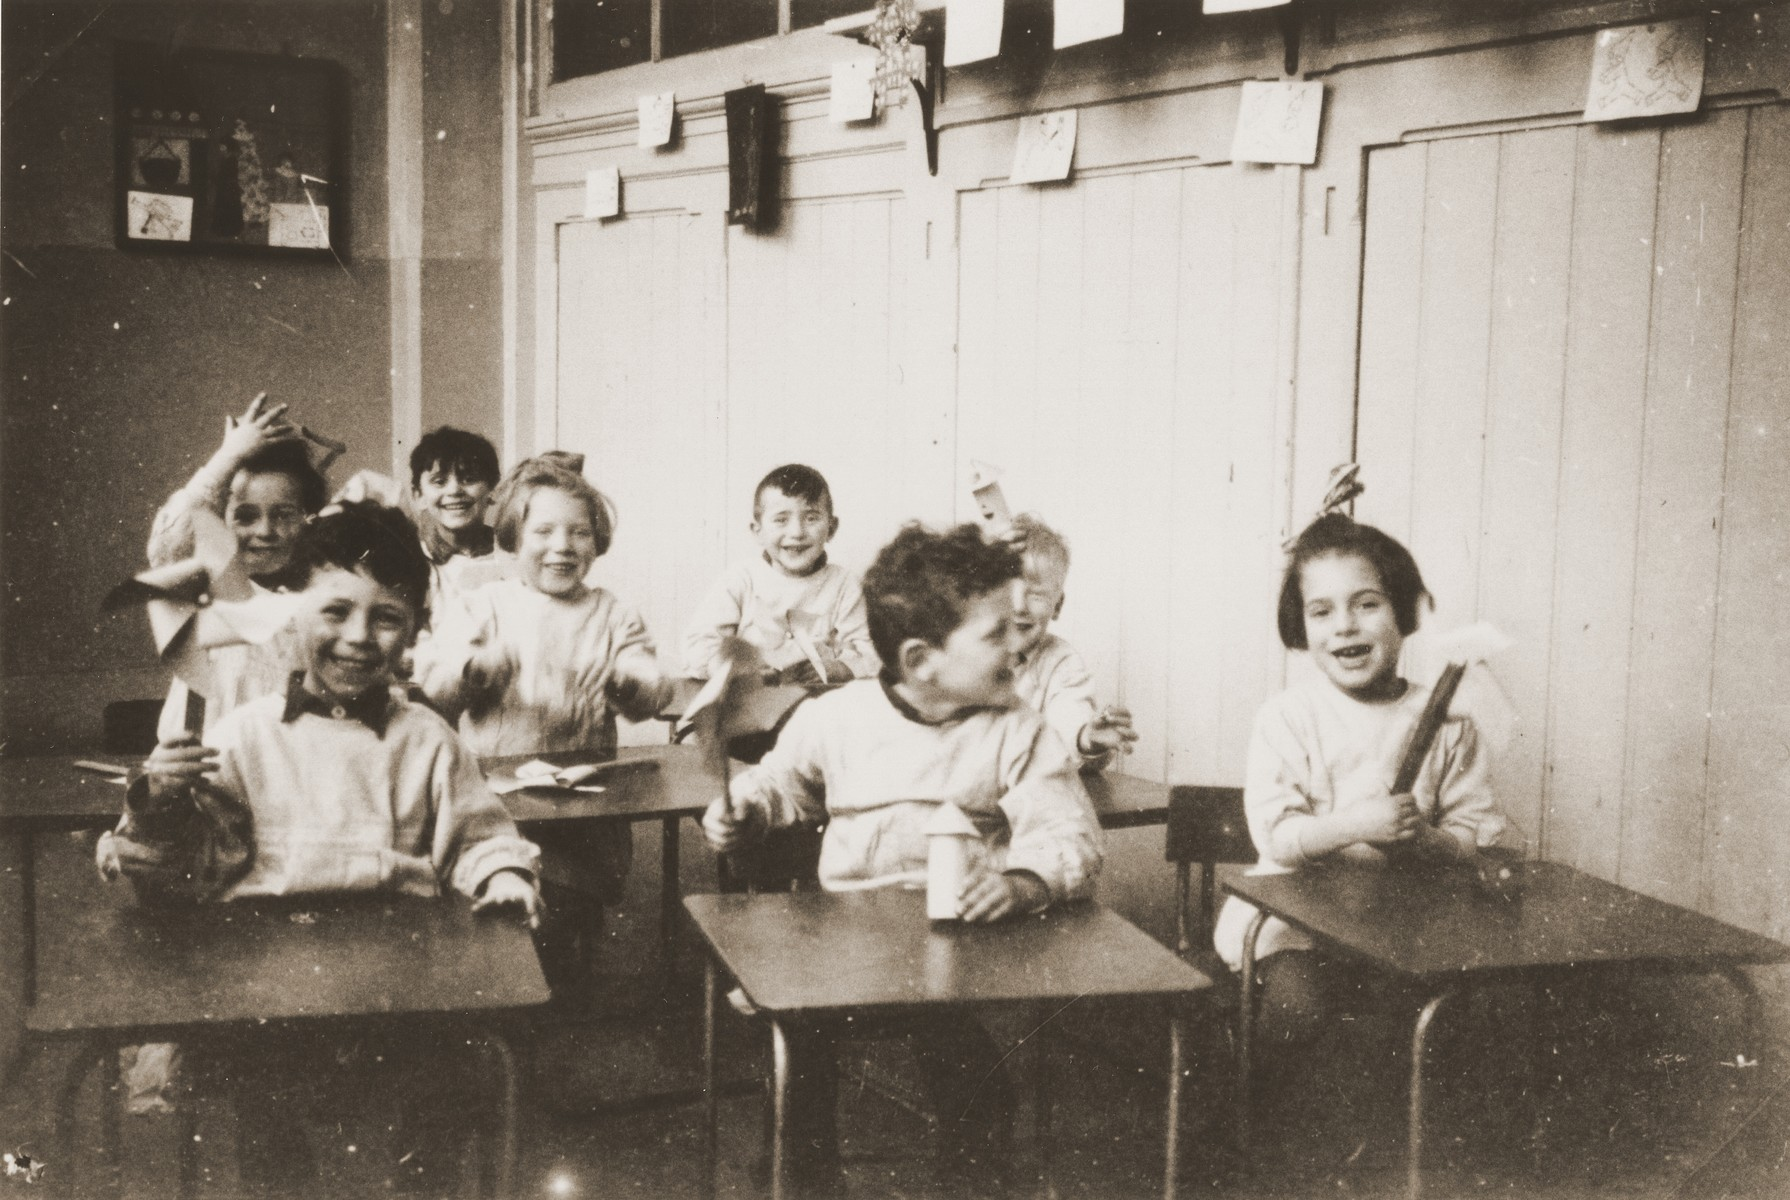 Young Jewish children sit at tables in the childcare center at the Joodsche Schouwburg in the Amsterdam Jewish quarter.